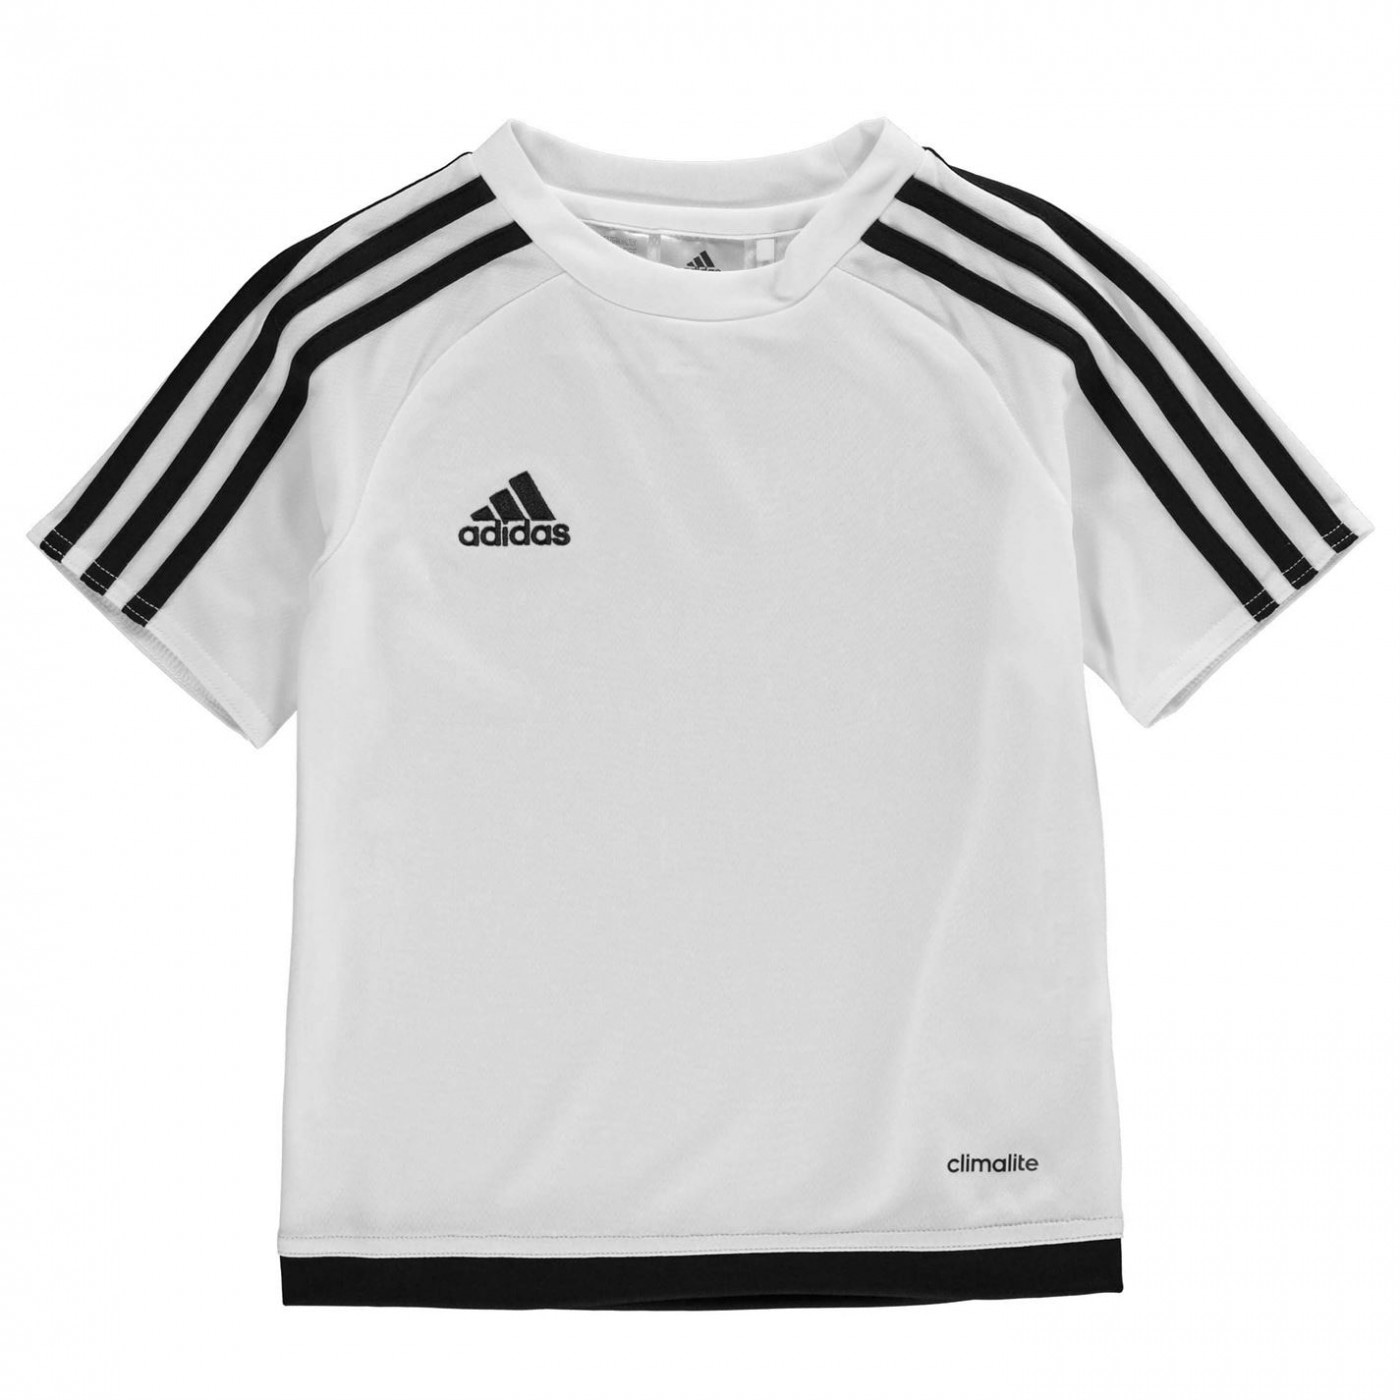 Adidas 3 Stripe Estro Tee Shirt Infants